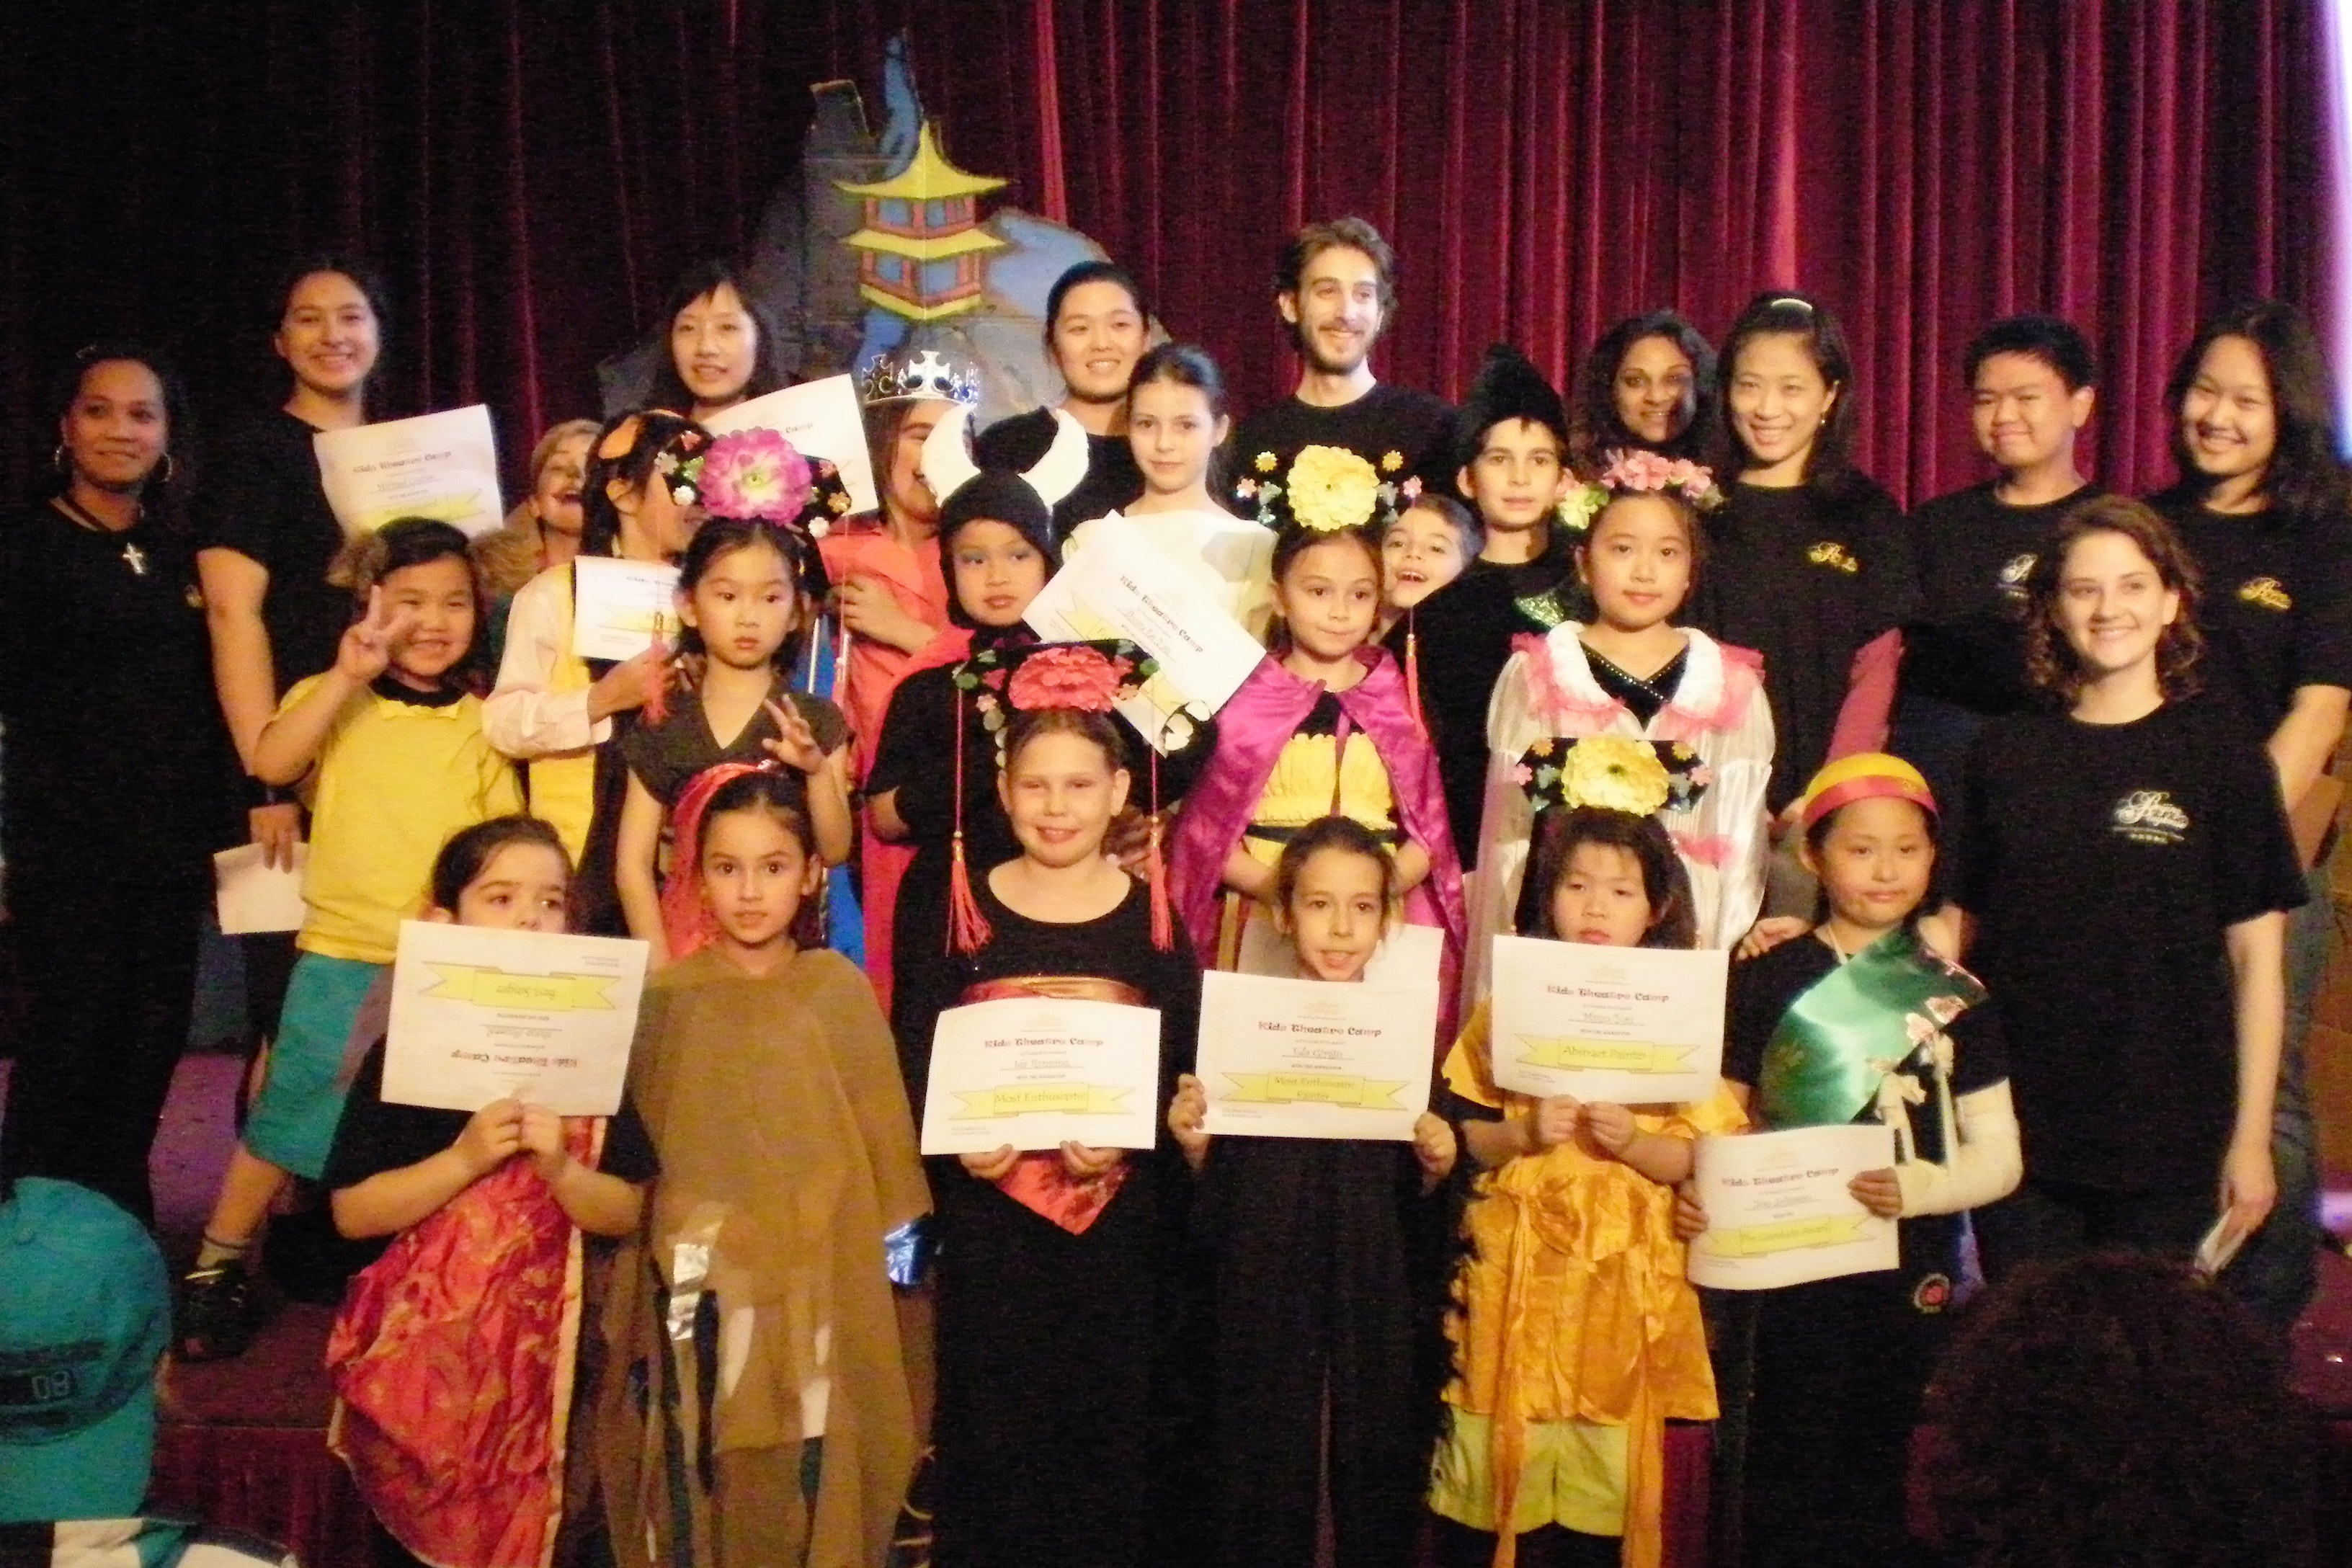 beijing playhouse kids theatre camp the monkey king 4.11.09 (30 ...